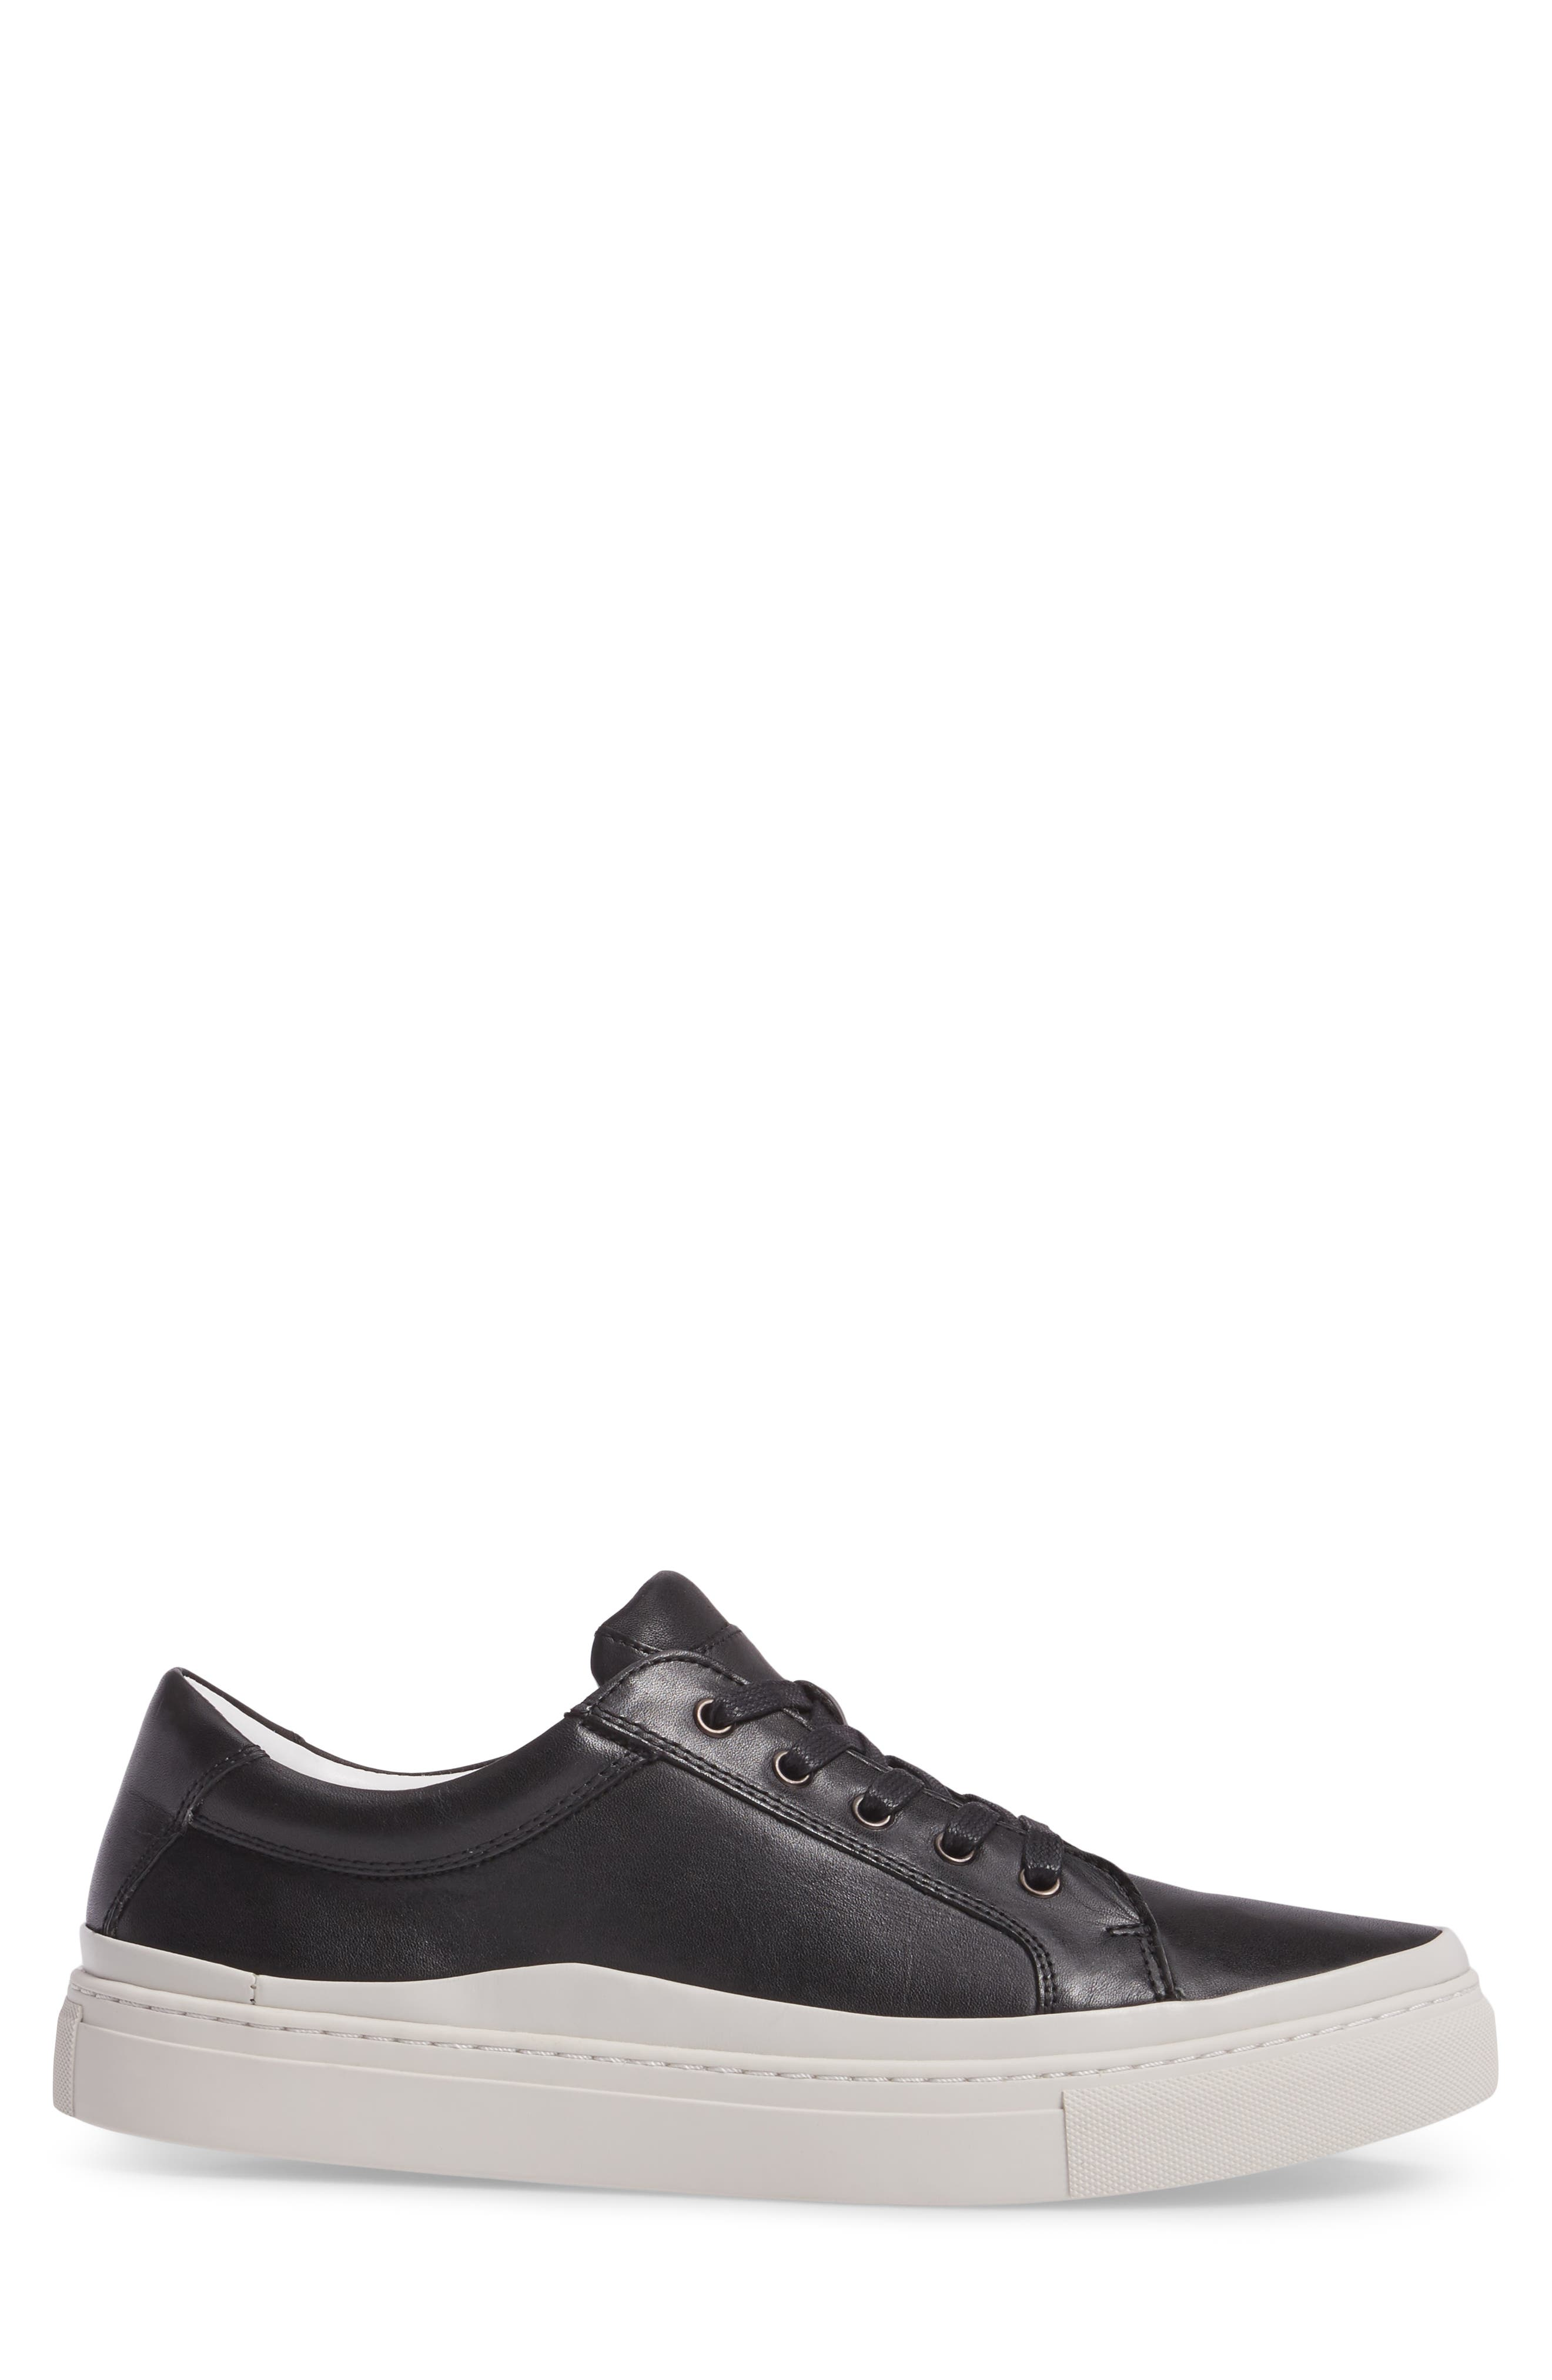 Kenneth Cole Reaction Sneaker,                             Alternate thumbnail 3, color,                             016